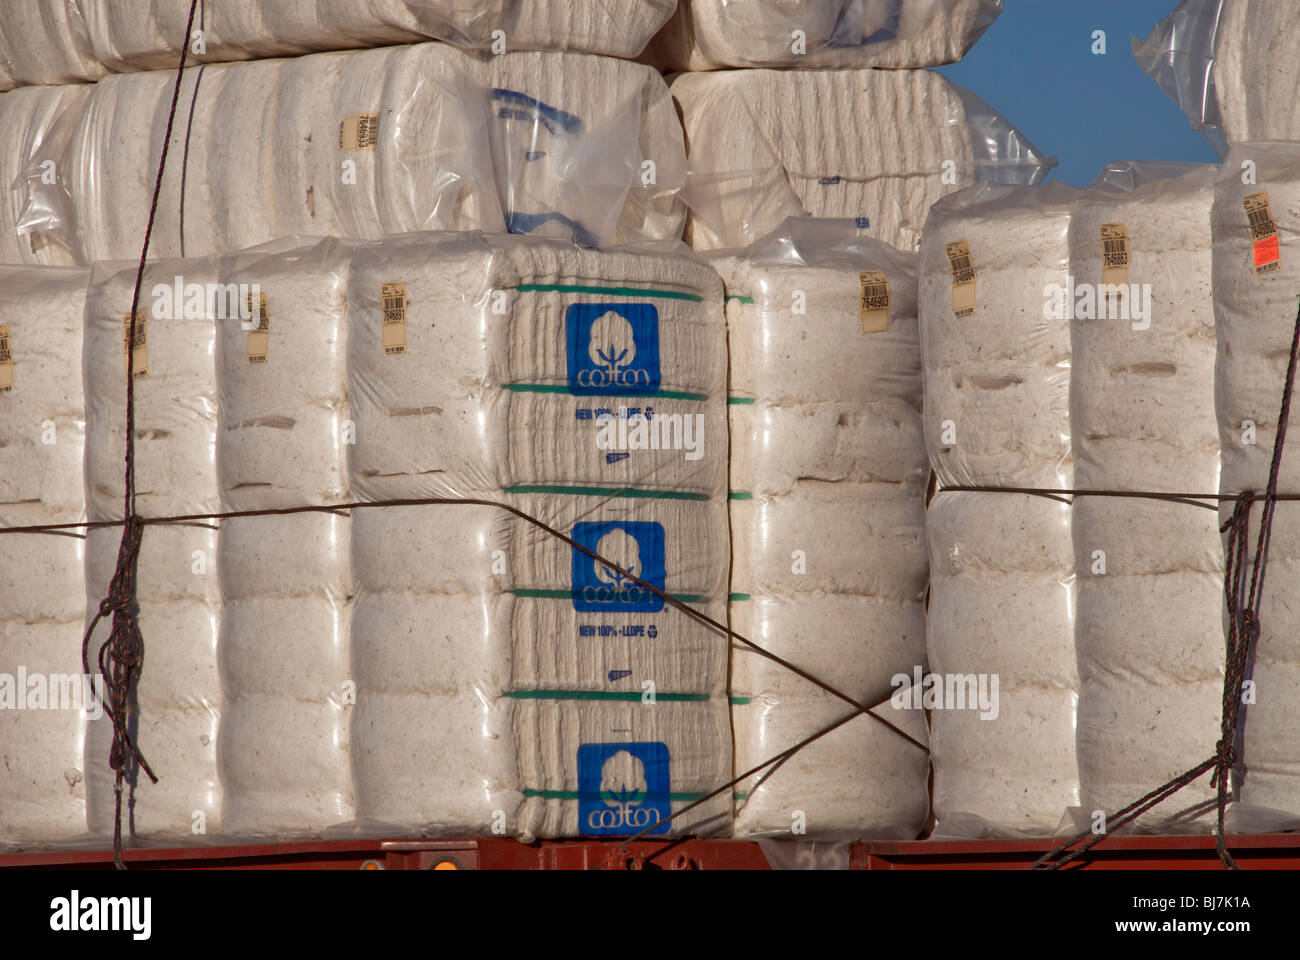 Cotton bales. - Stock Image